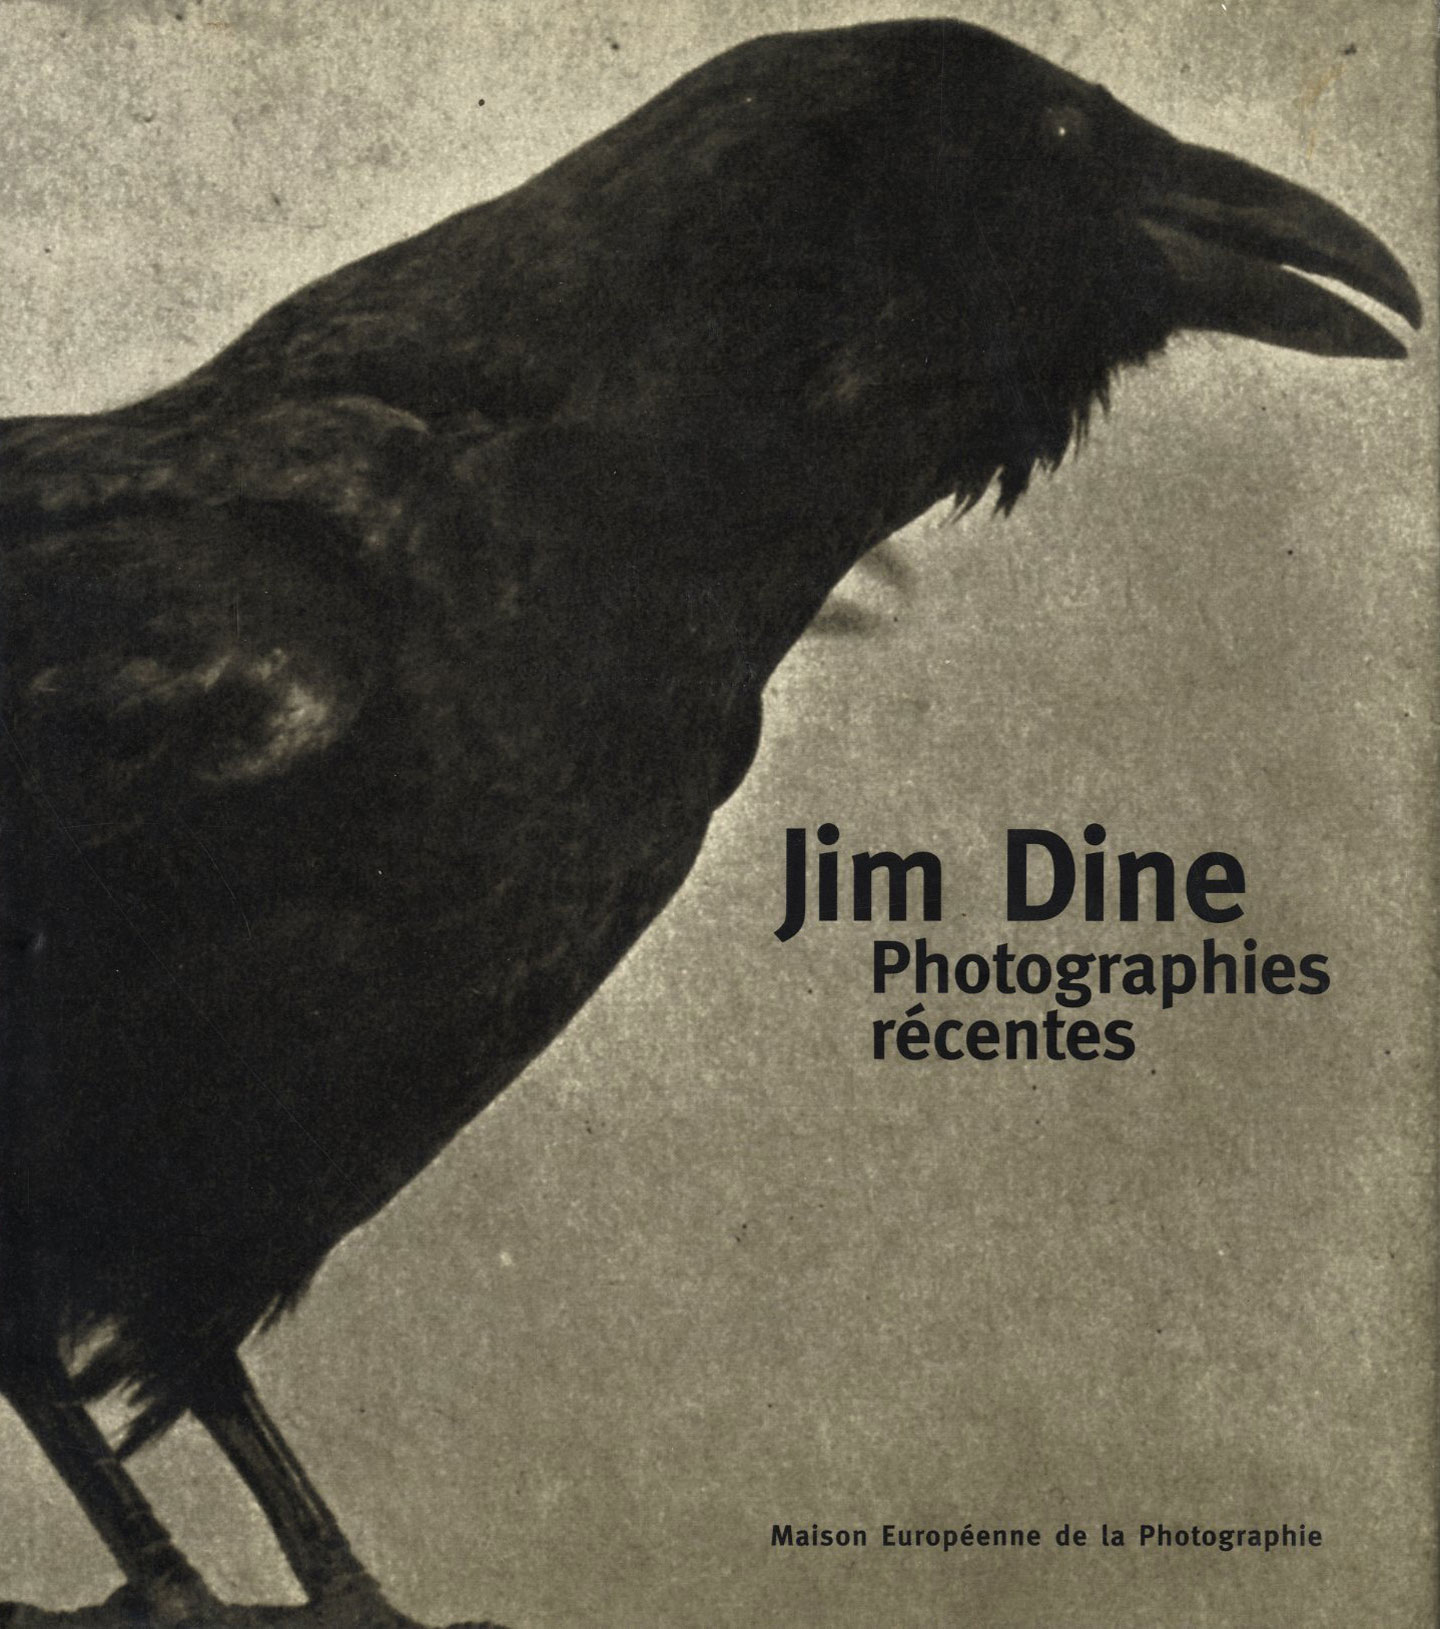 Jim Dine: Photographies récentes [SIGNED]